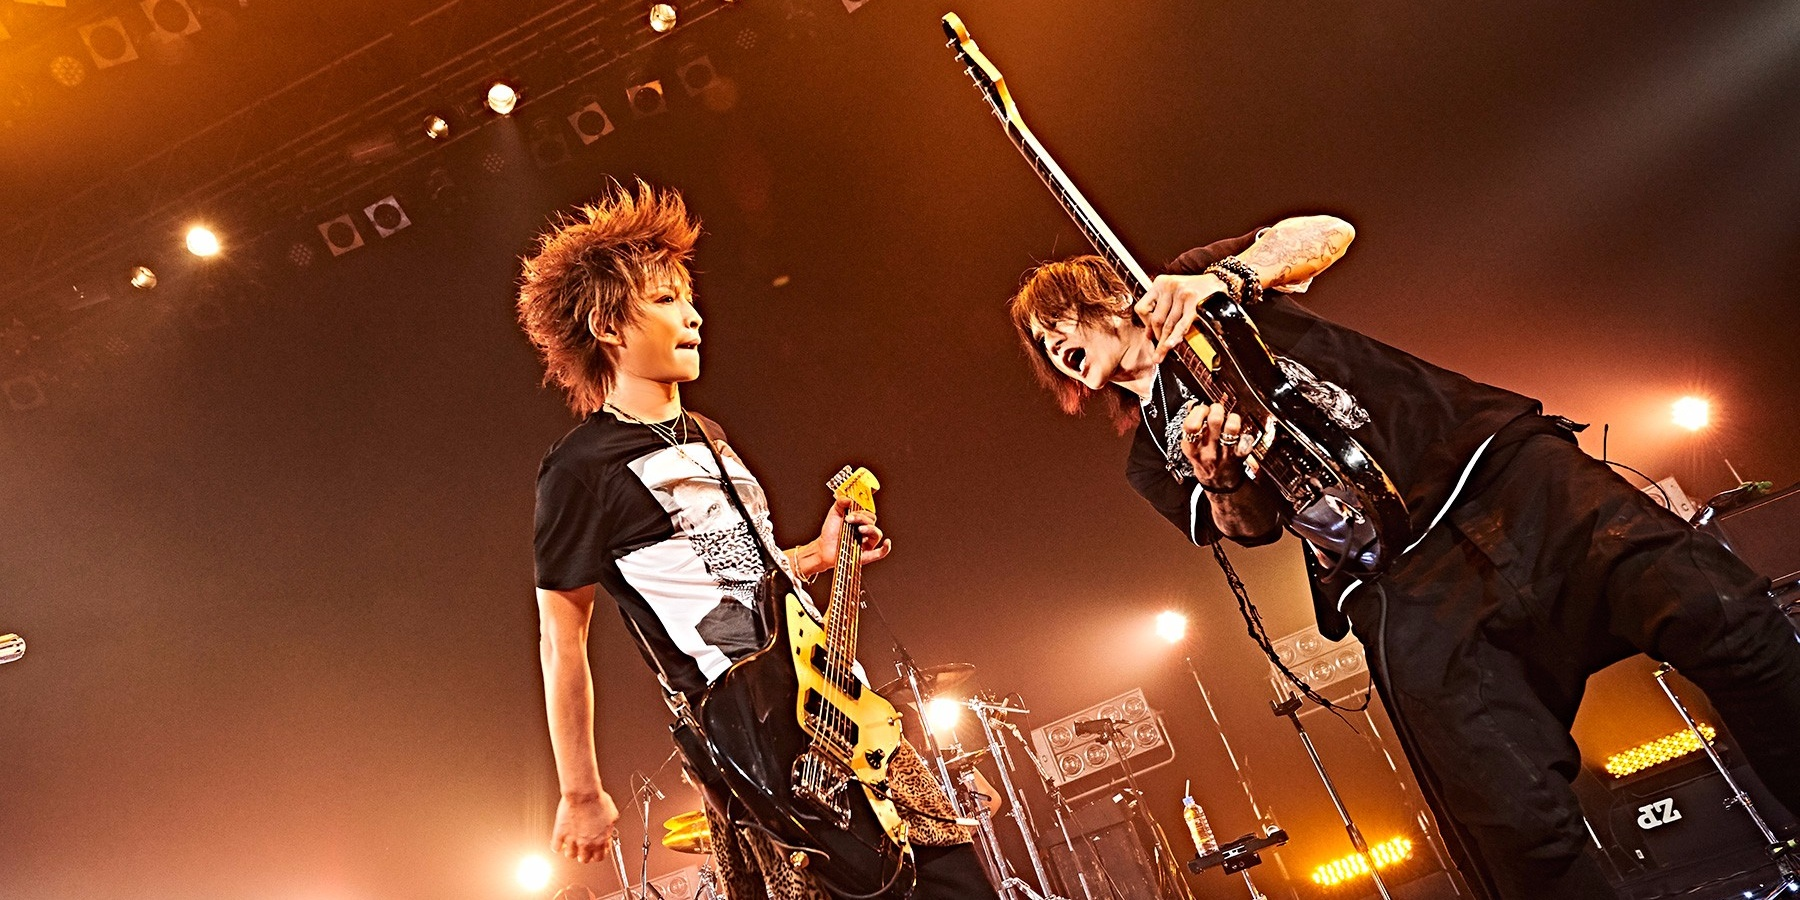 Sugizo takes on Inoran as LUNA SEA's guitar gods engage in a battle of the axes in Singapore